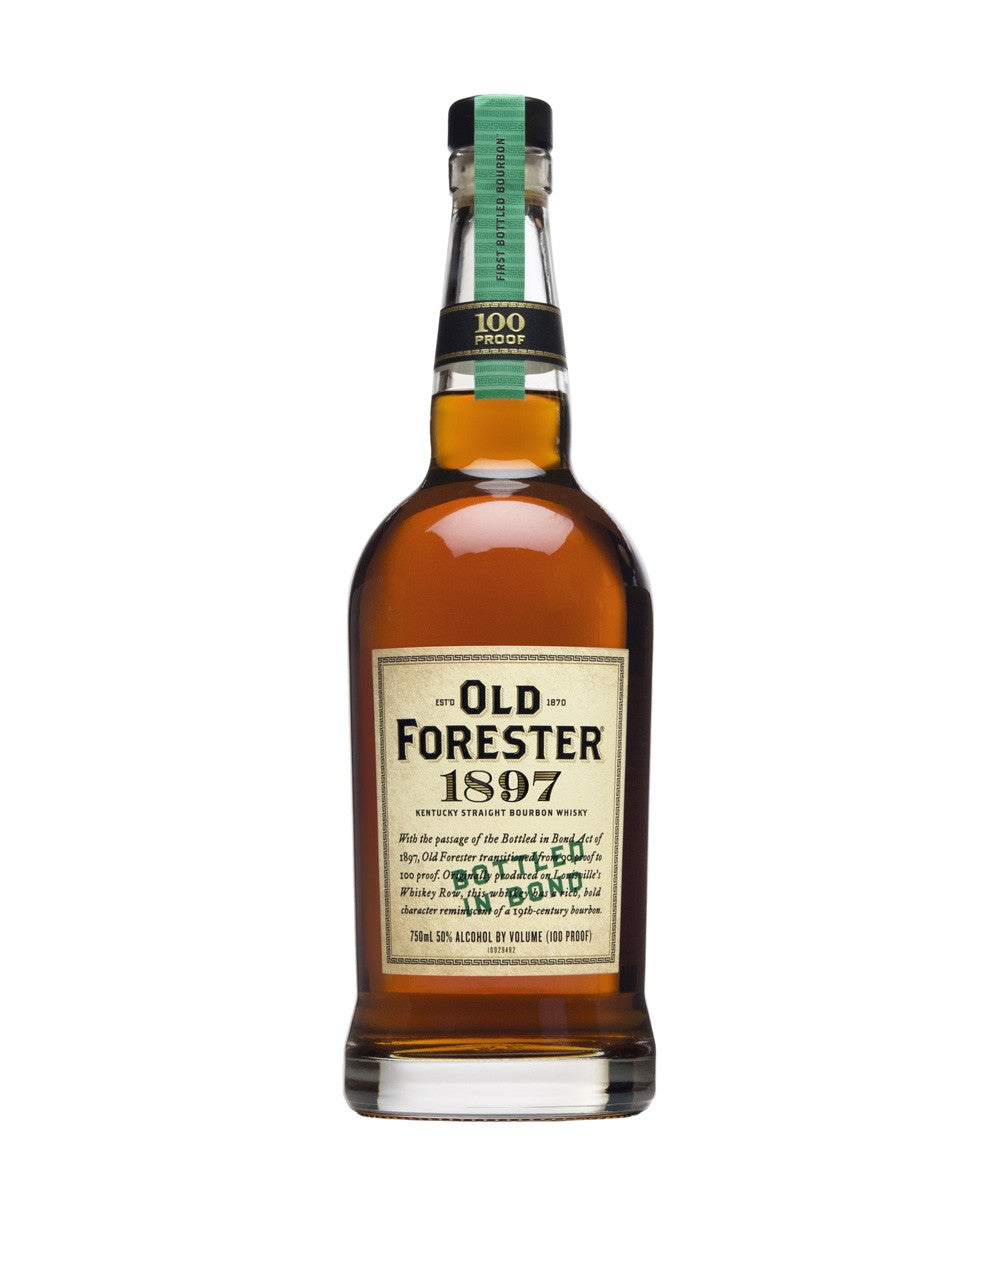 Old Forester 1897 Bottle In Bond - 750 ml - SipsyLA